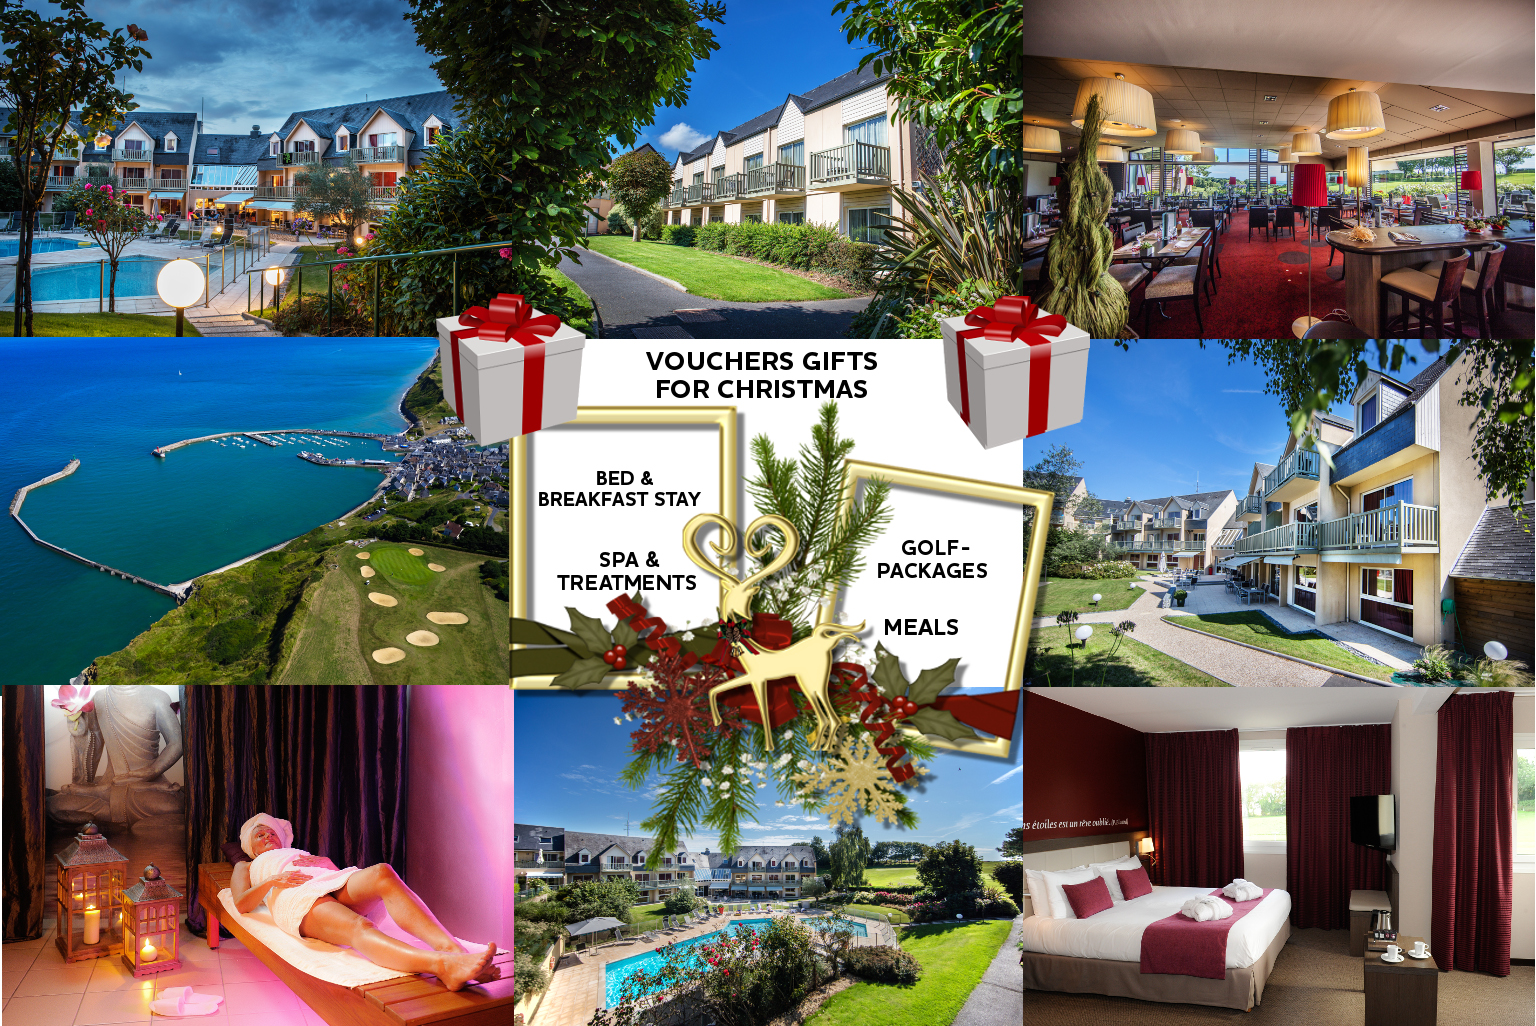 mercure-omaha-beach-voucher